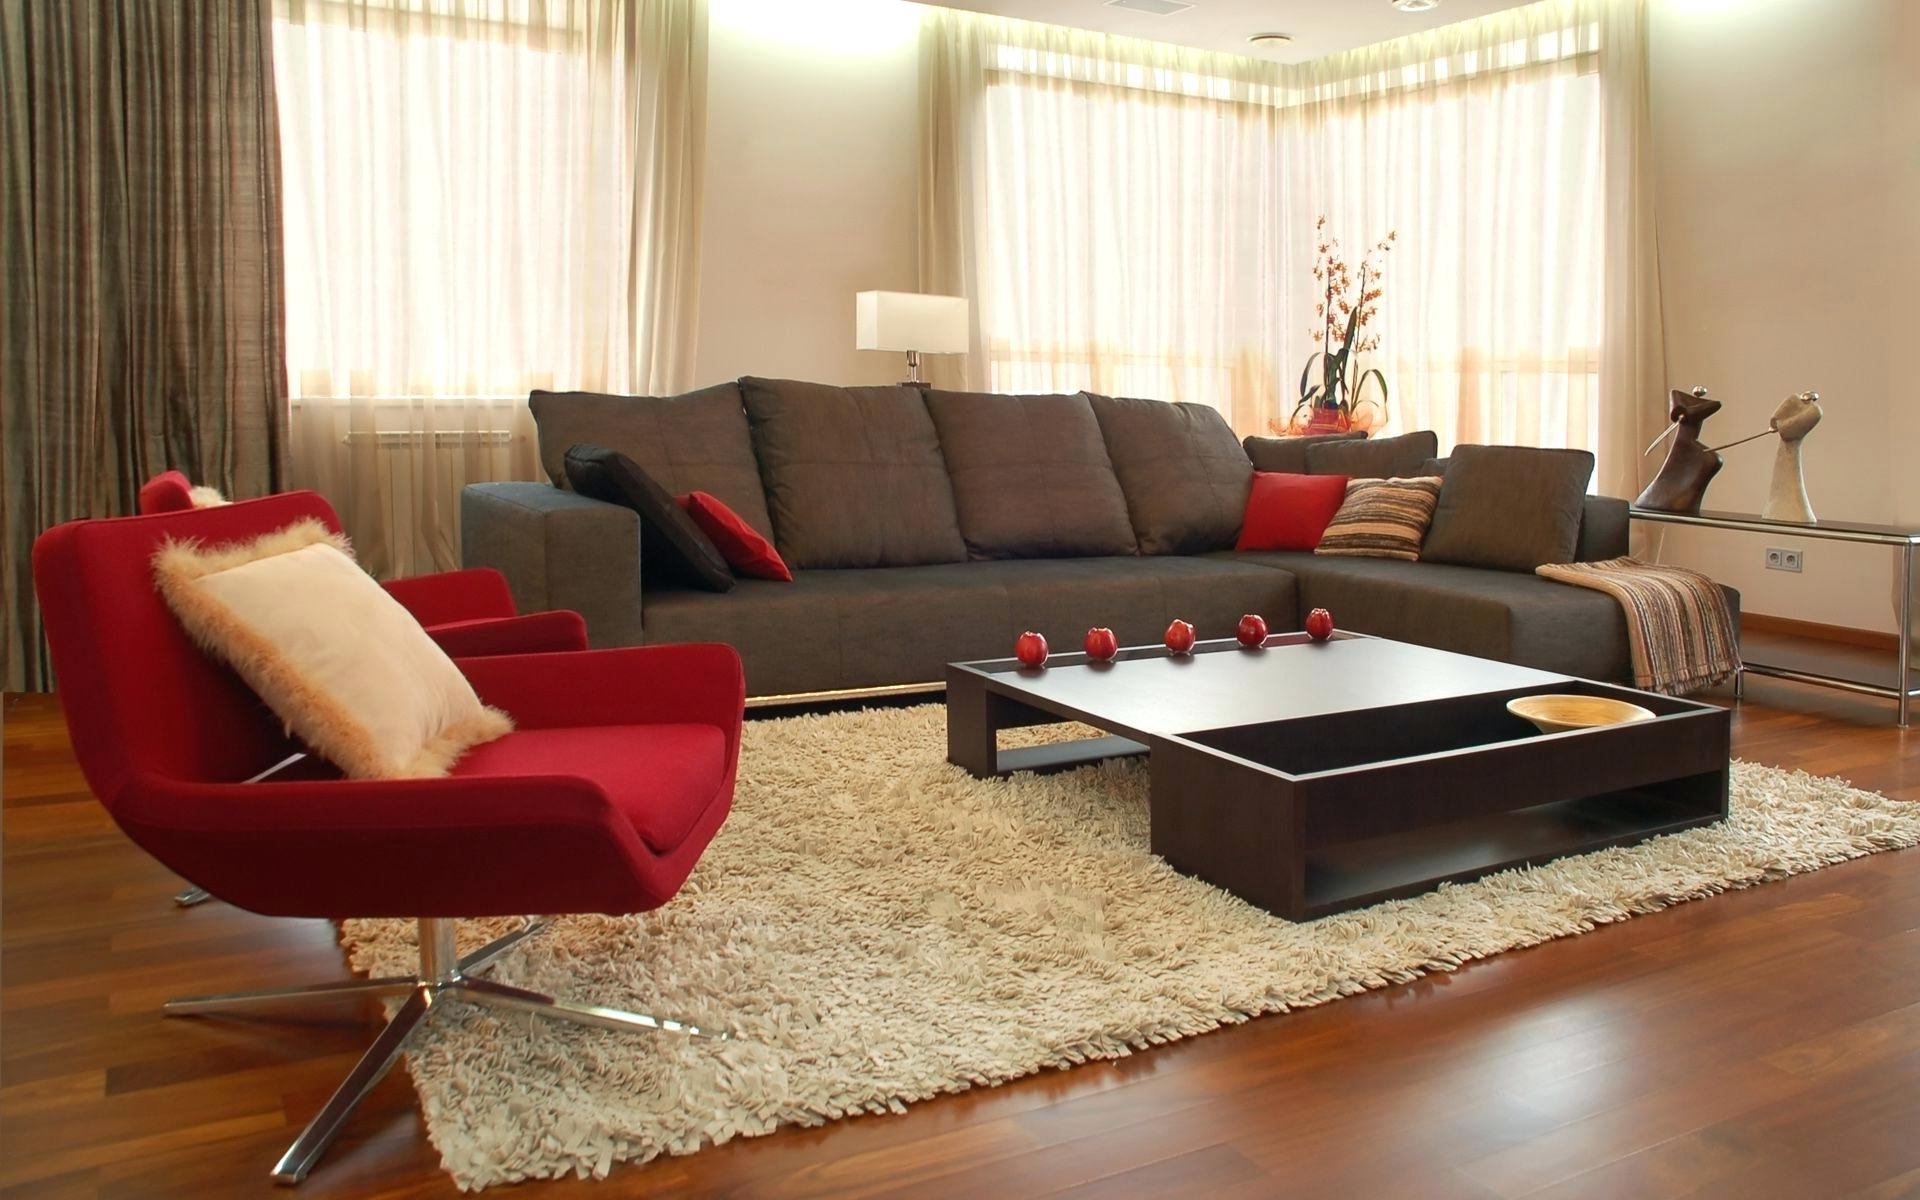 Well Known Red Chairs For Living Room Beautiful Corner Bench Living Room Design Pertaining To Red Sofas And Chairs (Gallery 15 of 20)